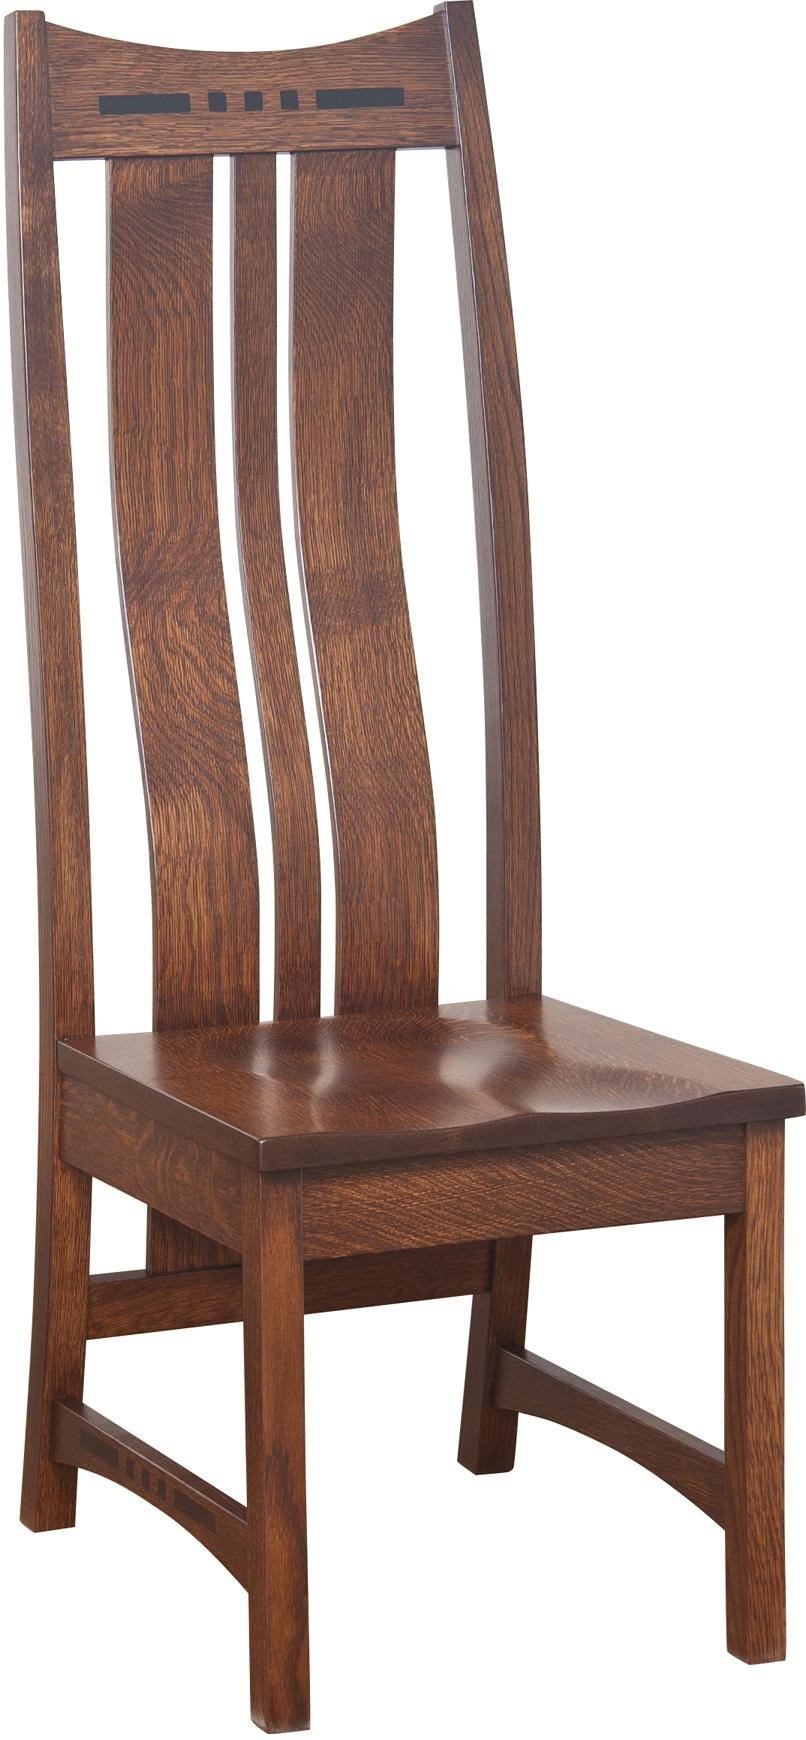 Charmant Indiana Amish Owen High Back Side Chair With Shaped Splat Back